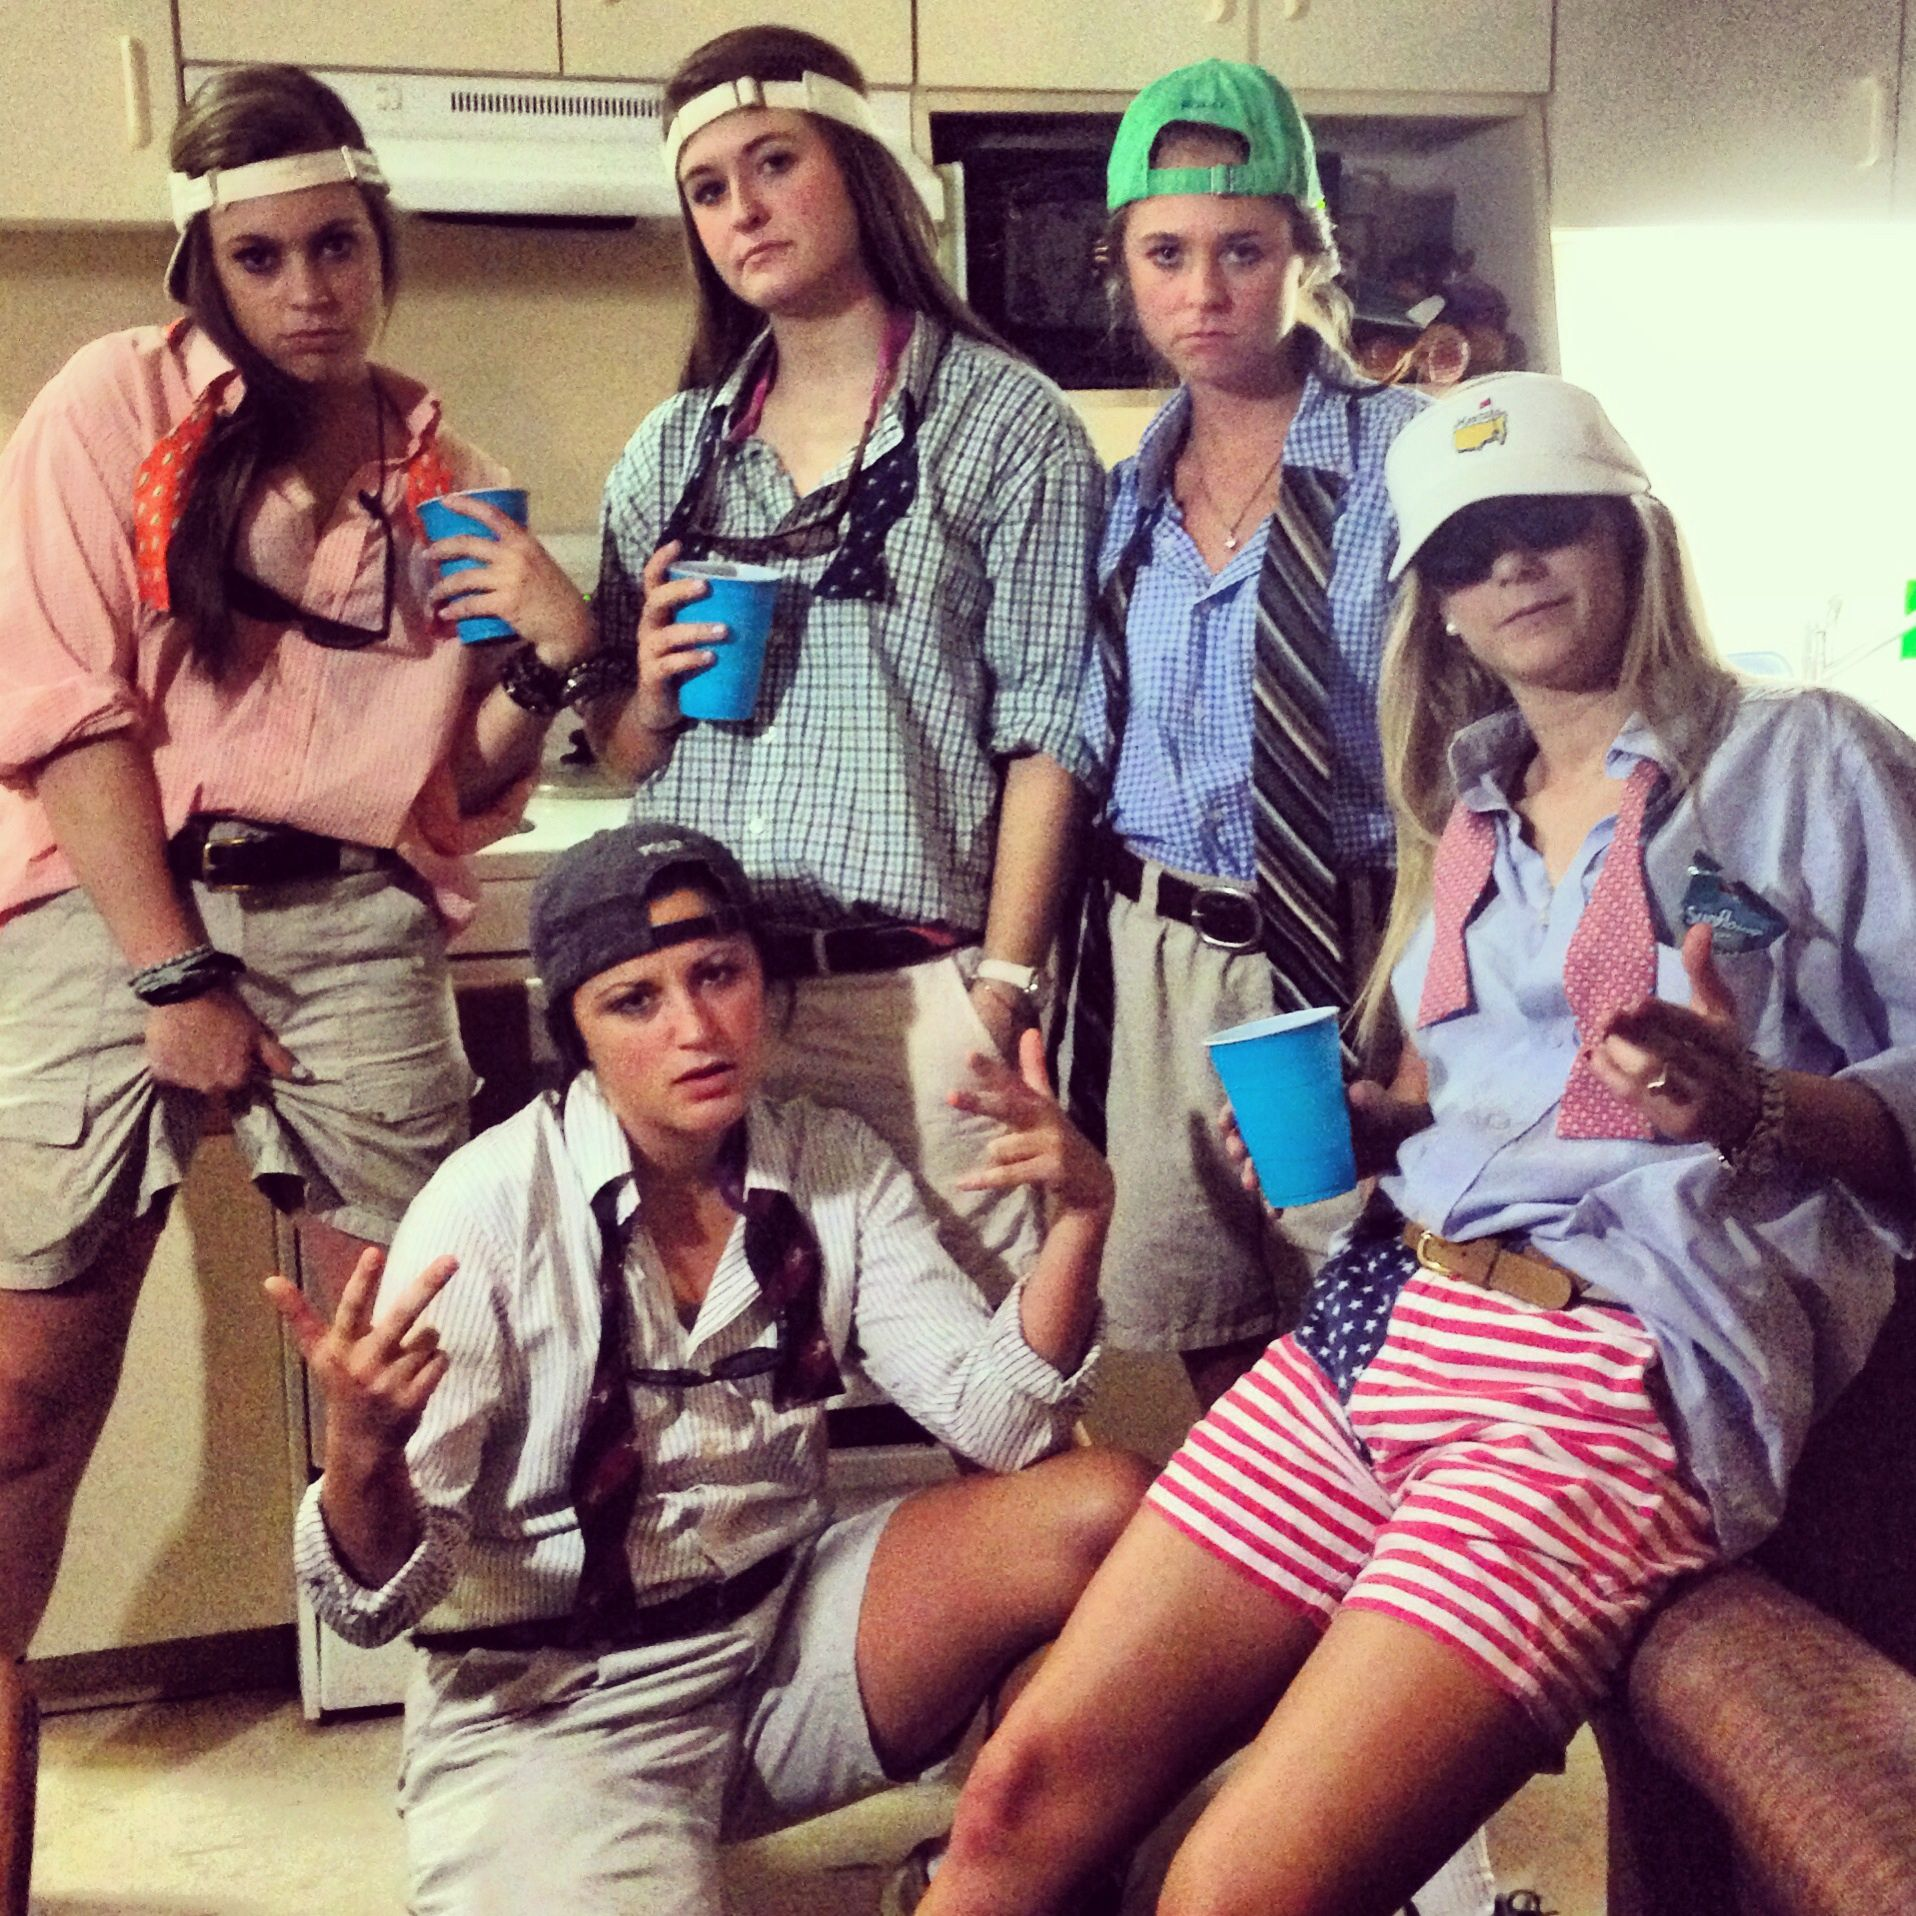 Holla atcha new Frat Daddyz. We are the brothers of SDN fraternity ...